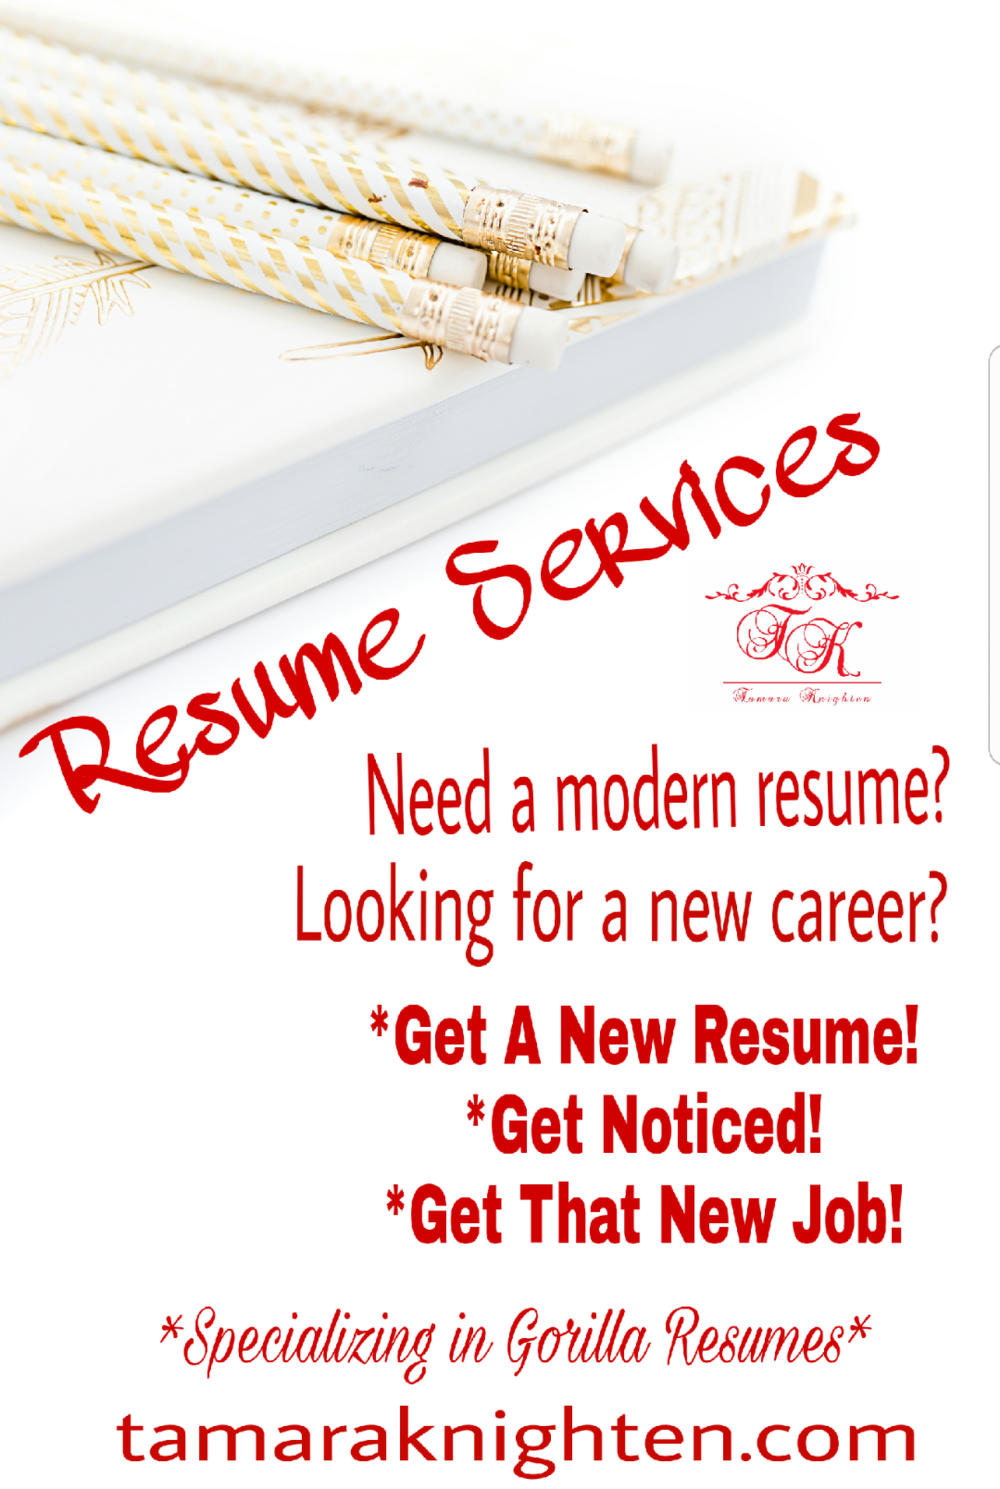 - Is your resume outdated?  You need the latest and greatest Gorilla Resume to GET NOTICED and GET THAT JOB!!!!  Submit your payment by clicking the